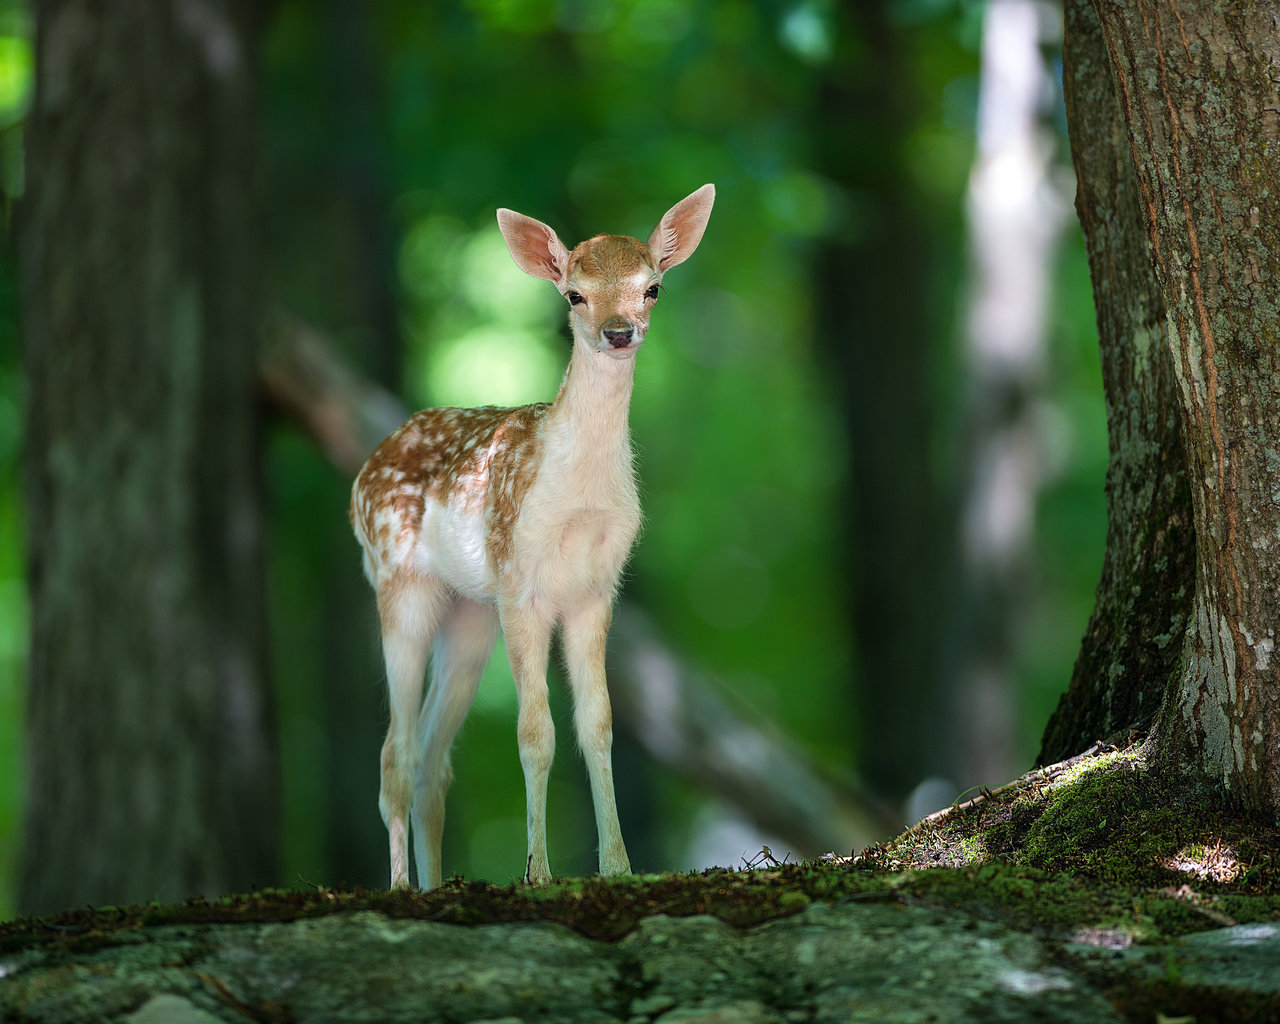 14926 download wallpaper Animals, Deers screensavers and pictures for free